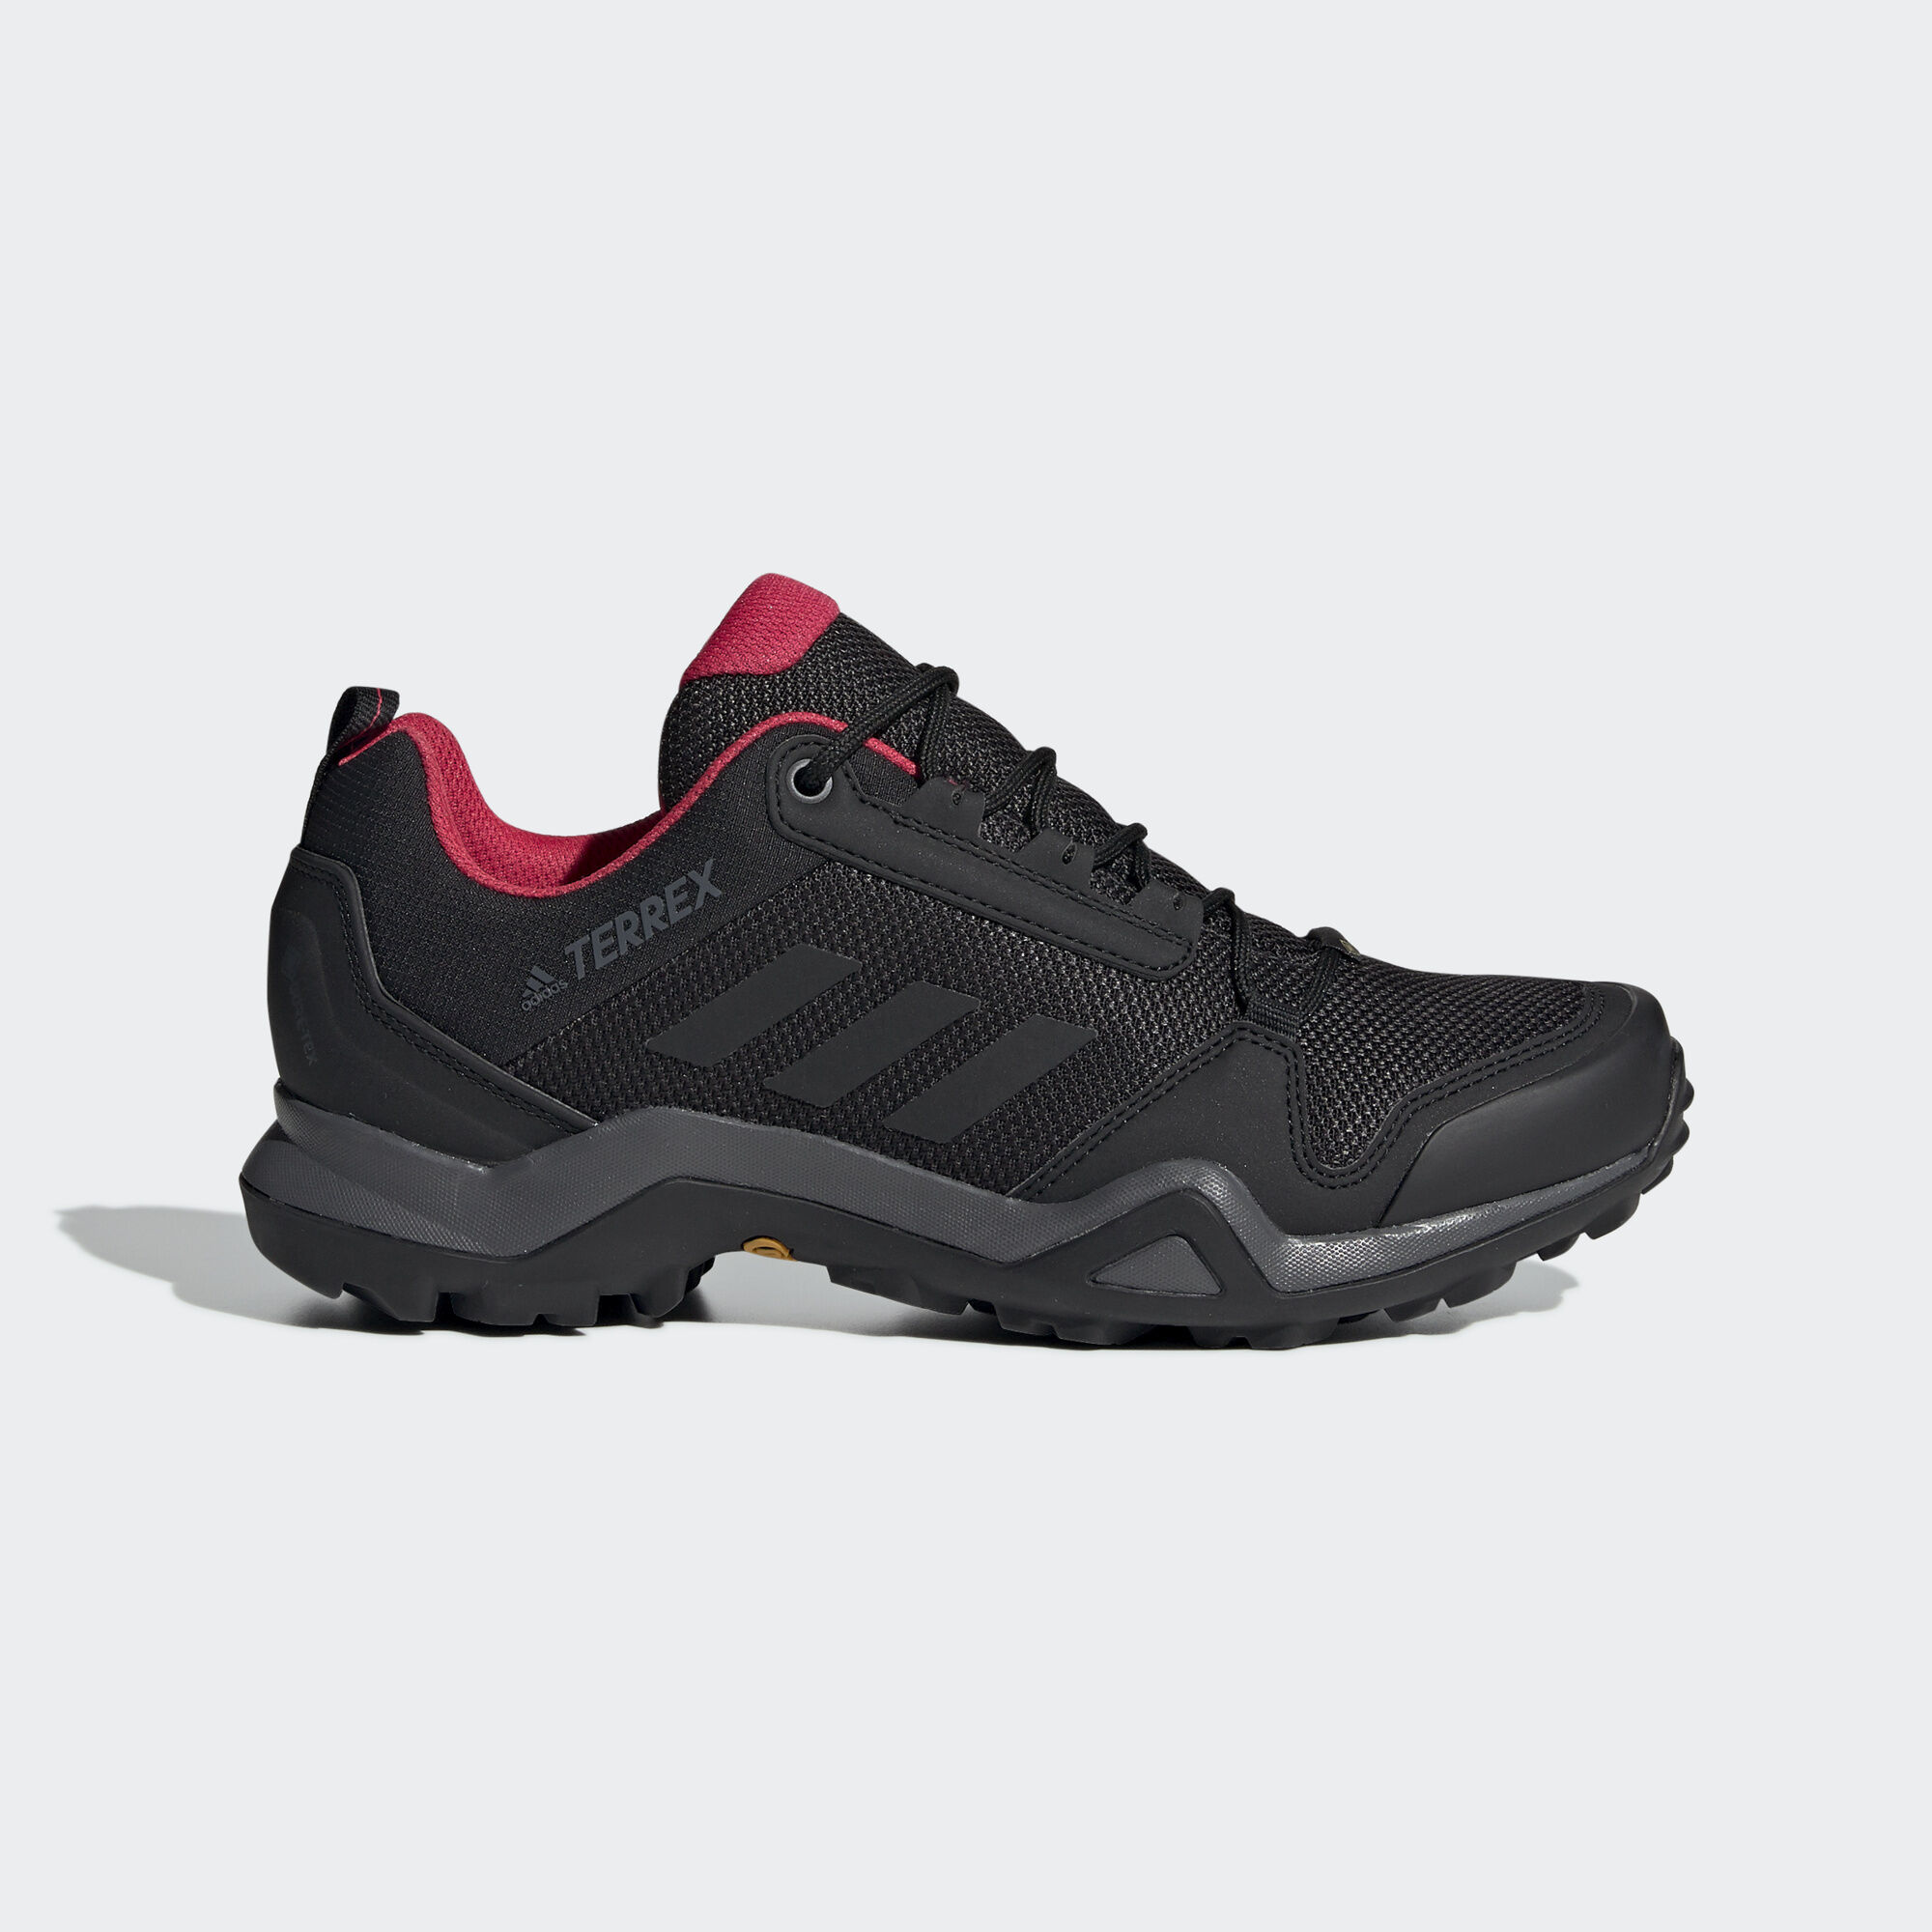 d4fa384312d4d9 adidas - Terrex AX3 GTX Shoes Black   Core Black   Active Pink BC0572. Women  TERREX